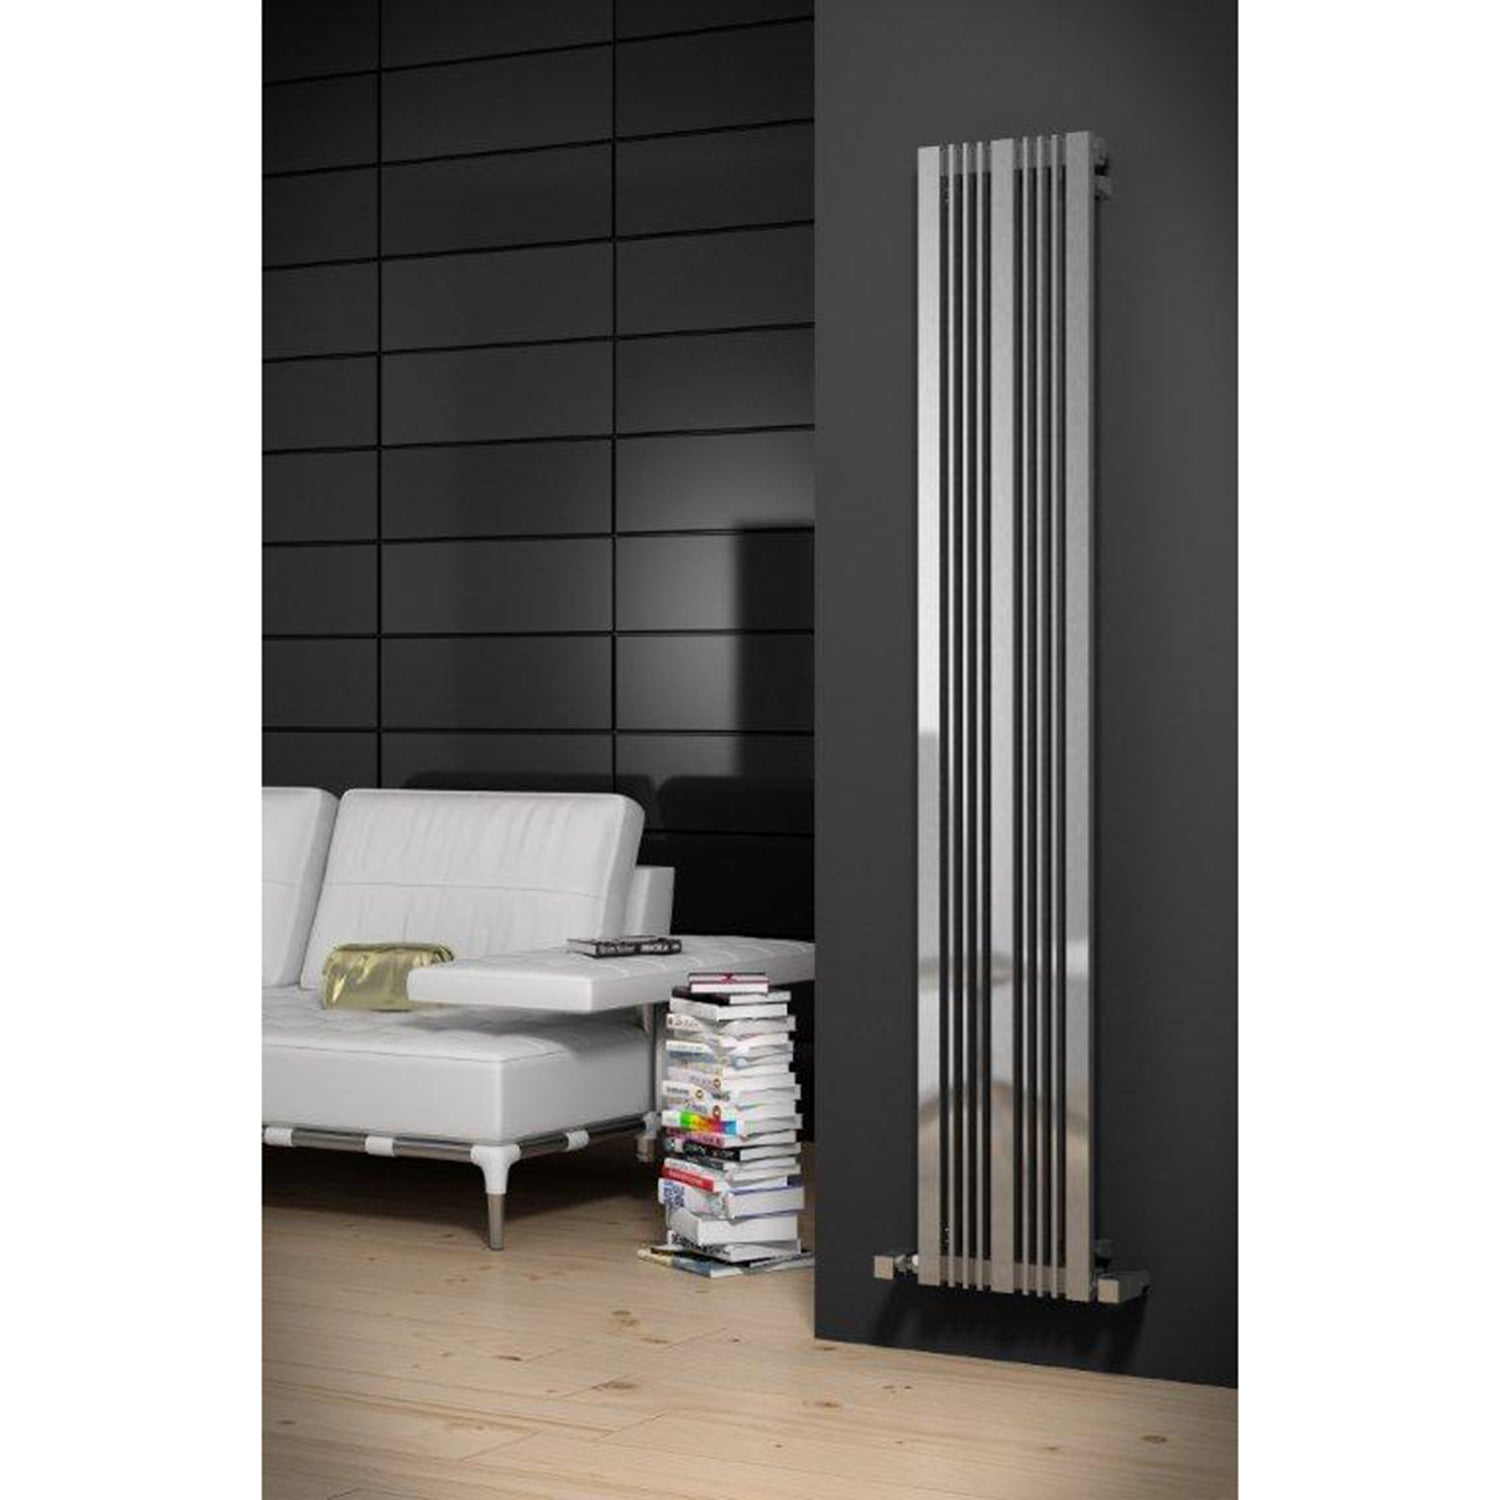 Reina Karia Vertical Stainless Steel Radiator